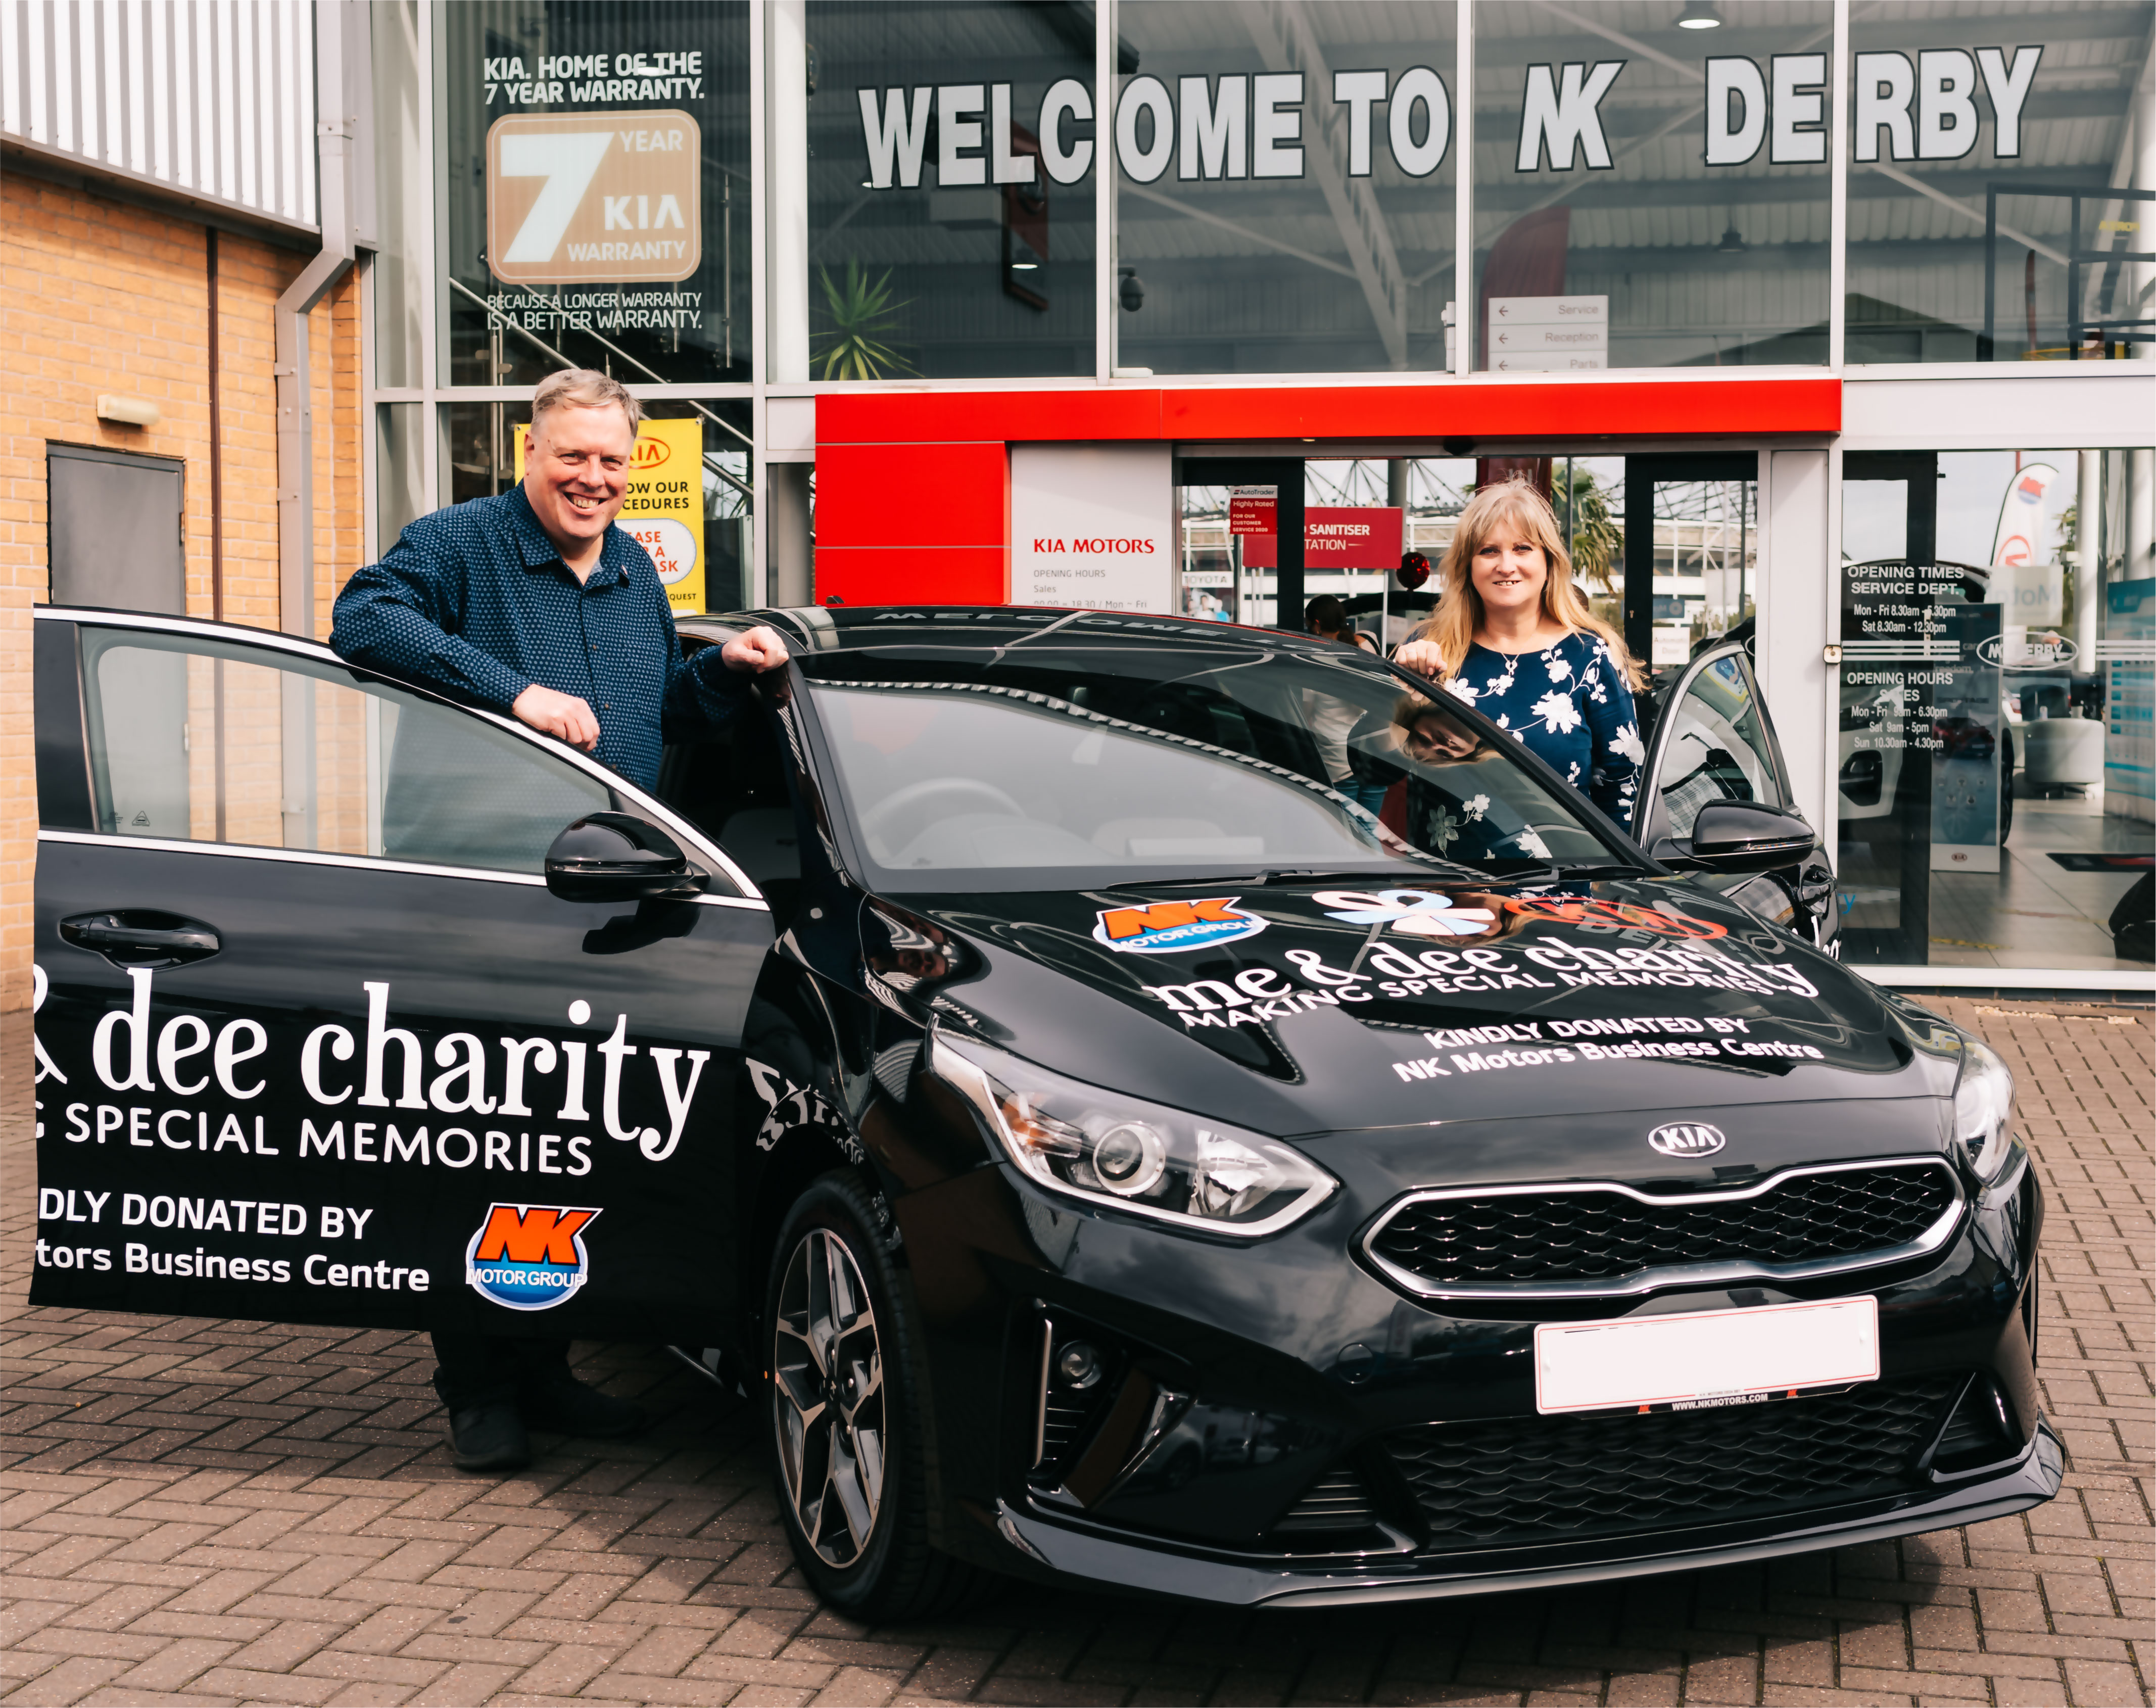 The UK's largest Kia car dealership has gifted a car to Derby based me&dee charity.